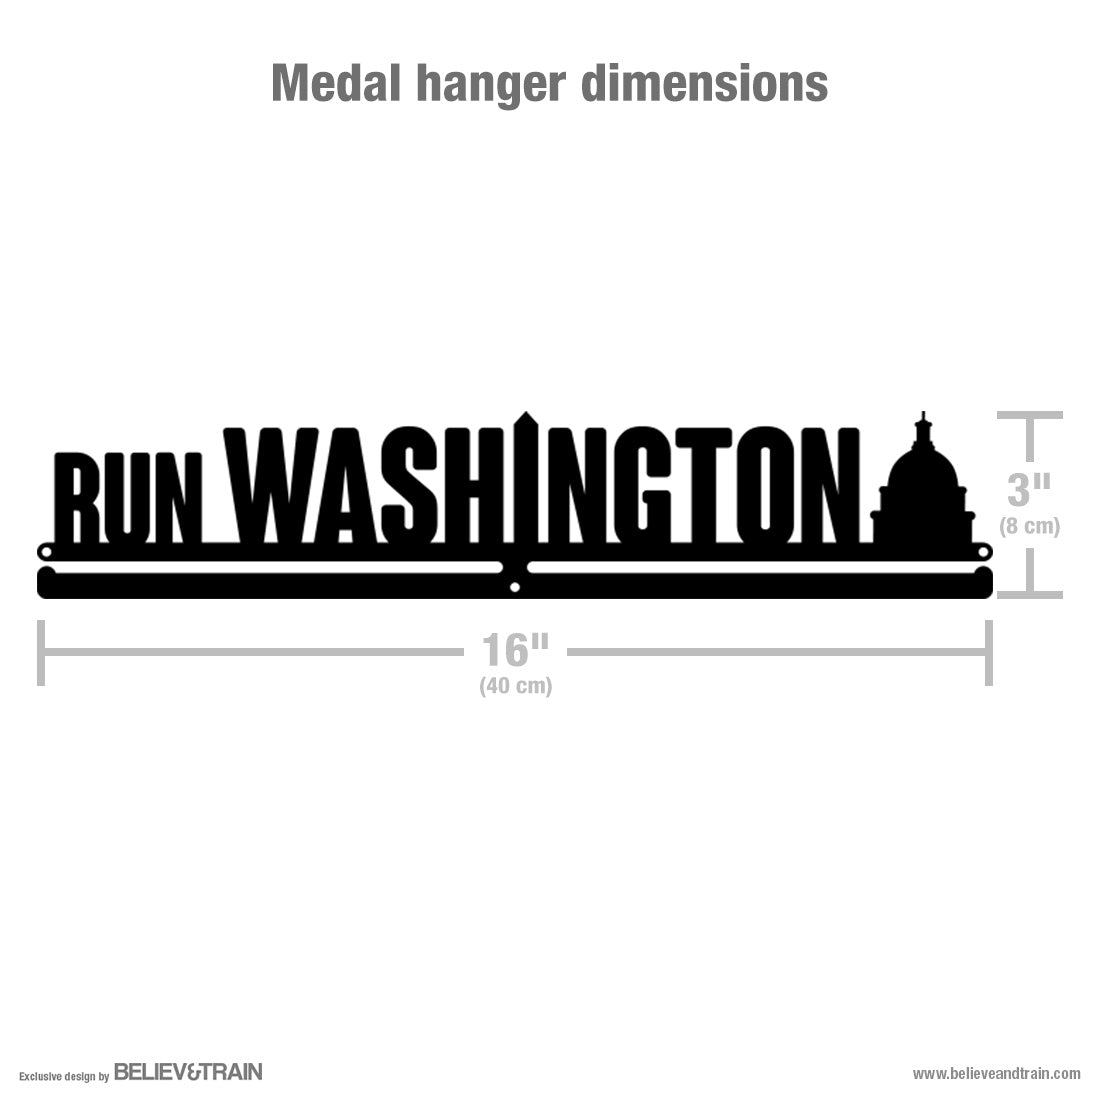 Run Washington - Running Medal Hanger